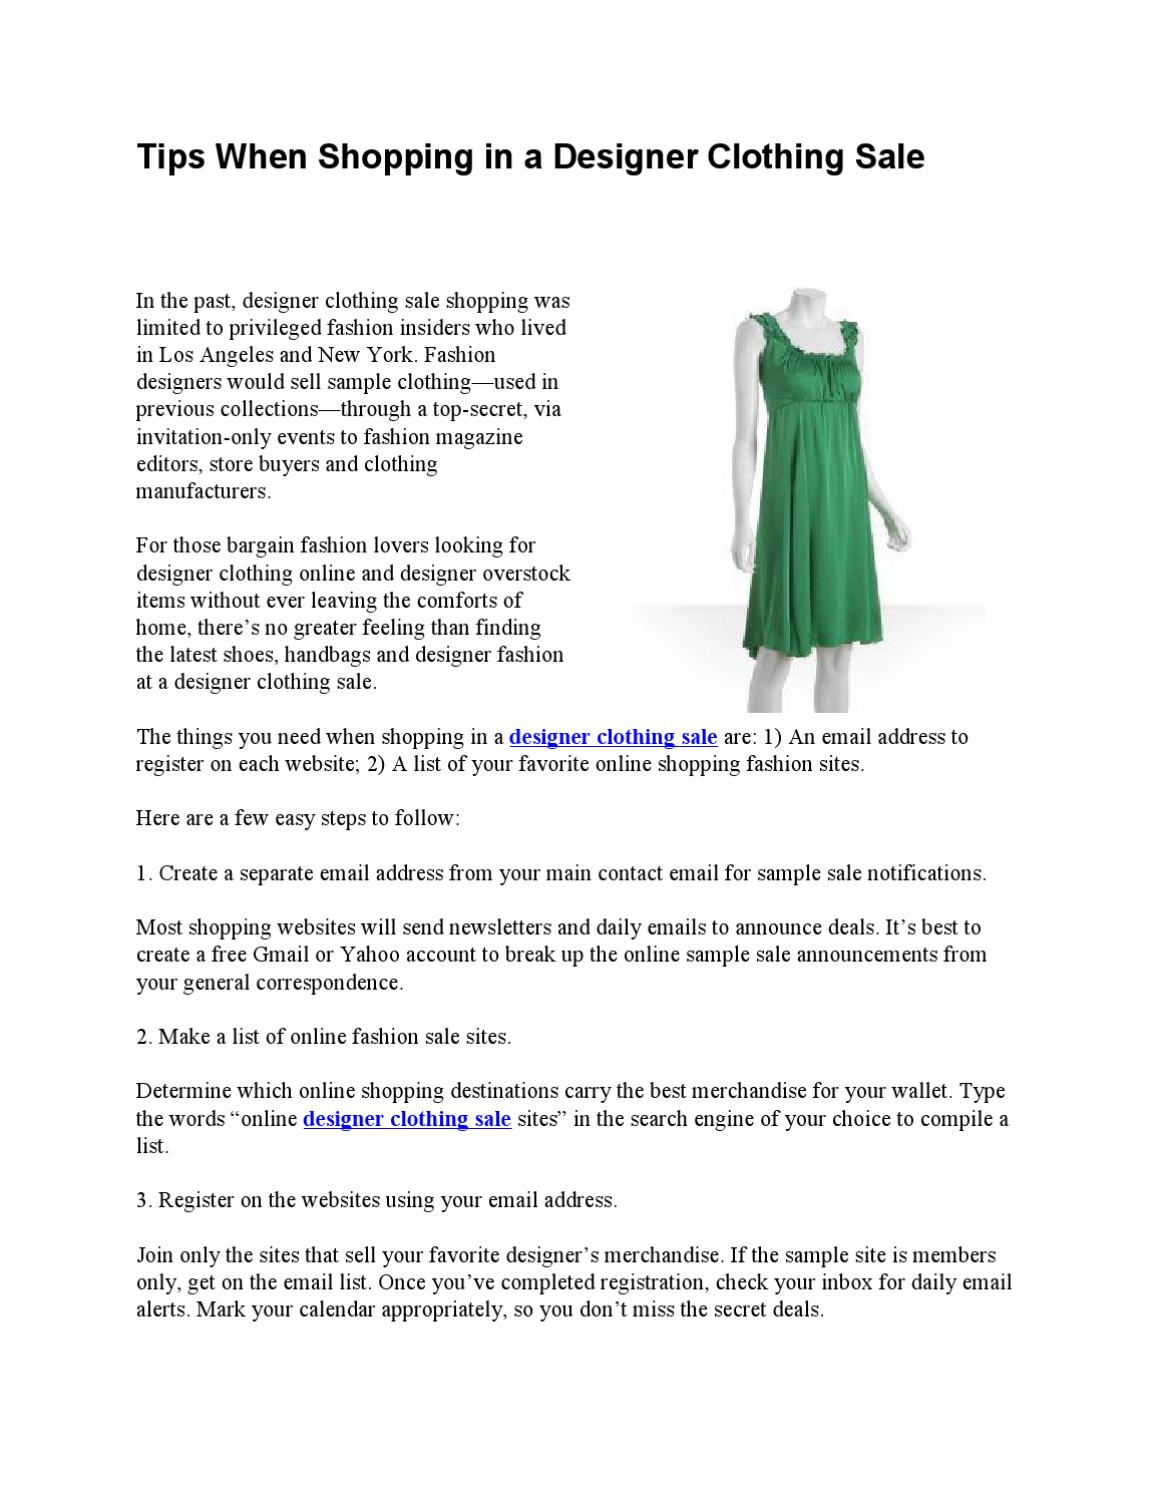 e9b2342910 Tips When Shopping in a Designer Clothing Sale by Fashion Tips - issuu